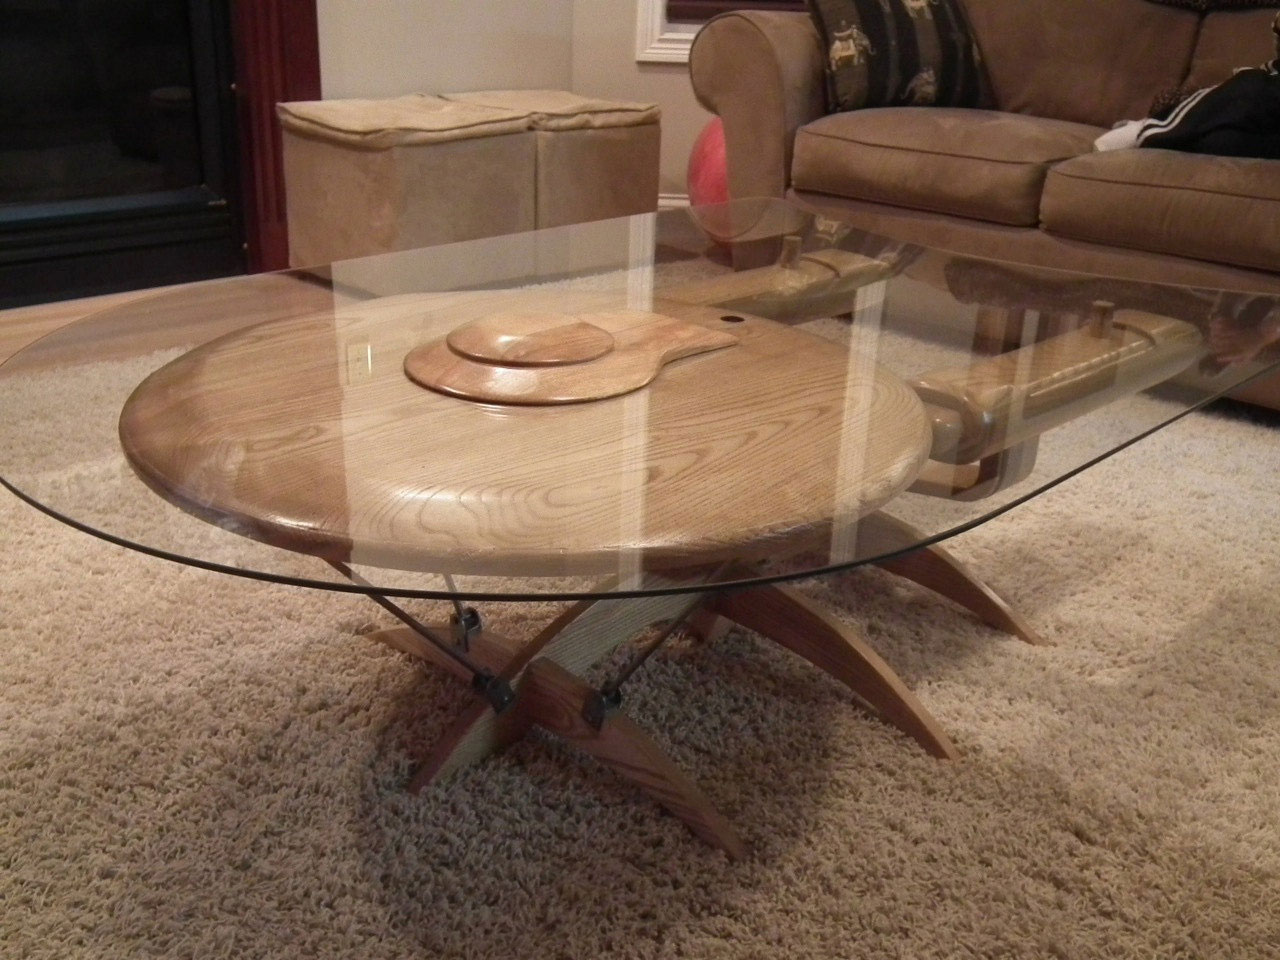 Geeky Coffee Tables Star Trek Uss Enterprise Ncc 1701 C Coffee Table The